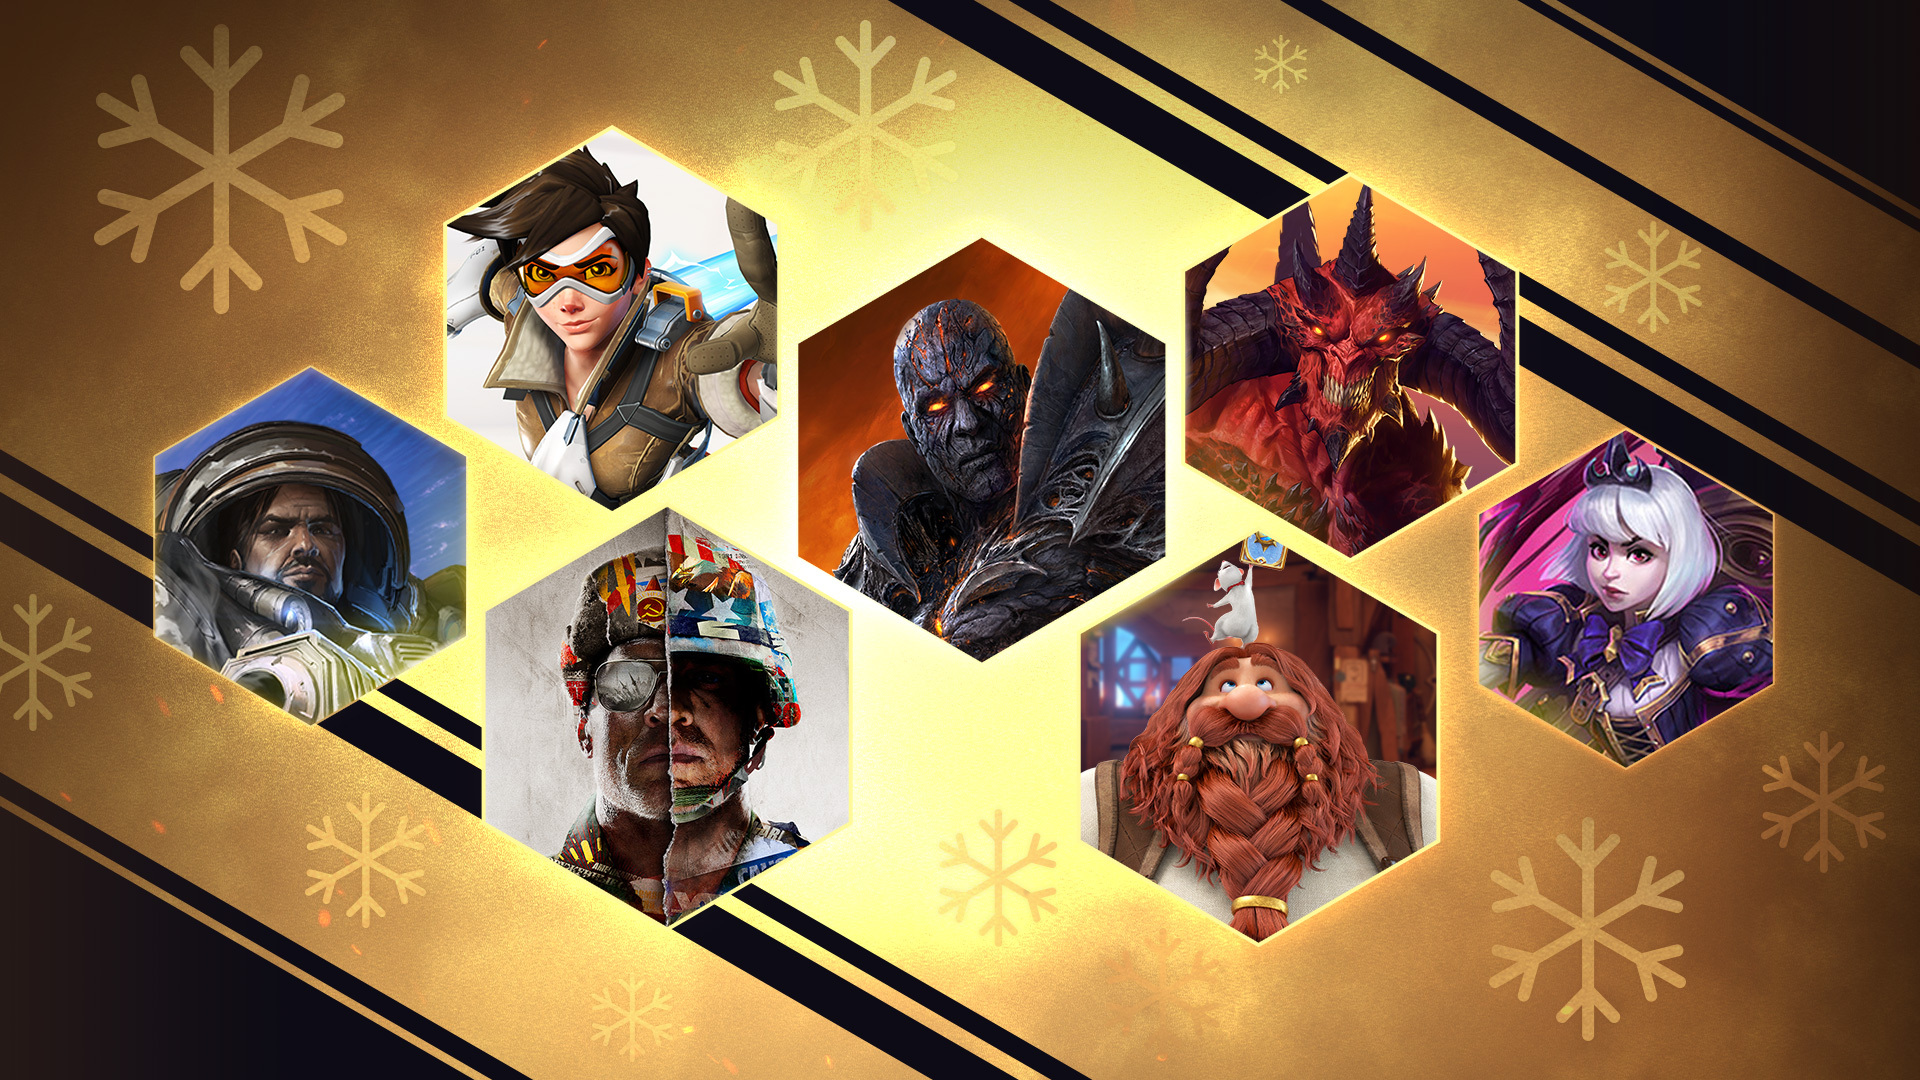 Spread some Blizzard Cheer with these Holiday Deals